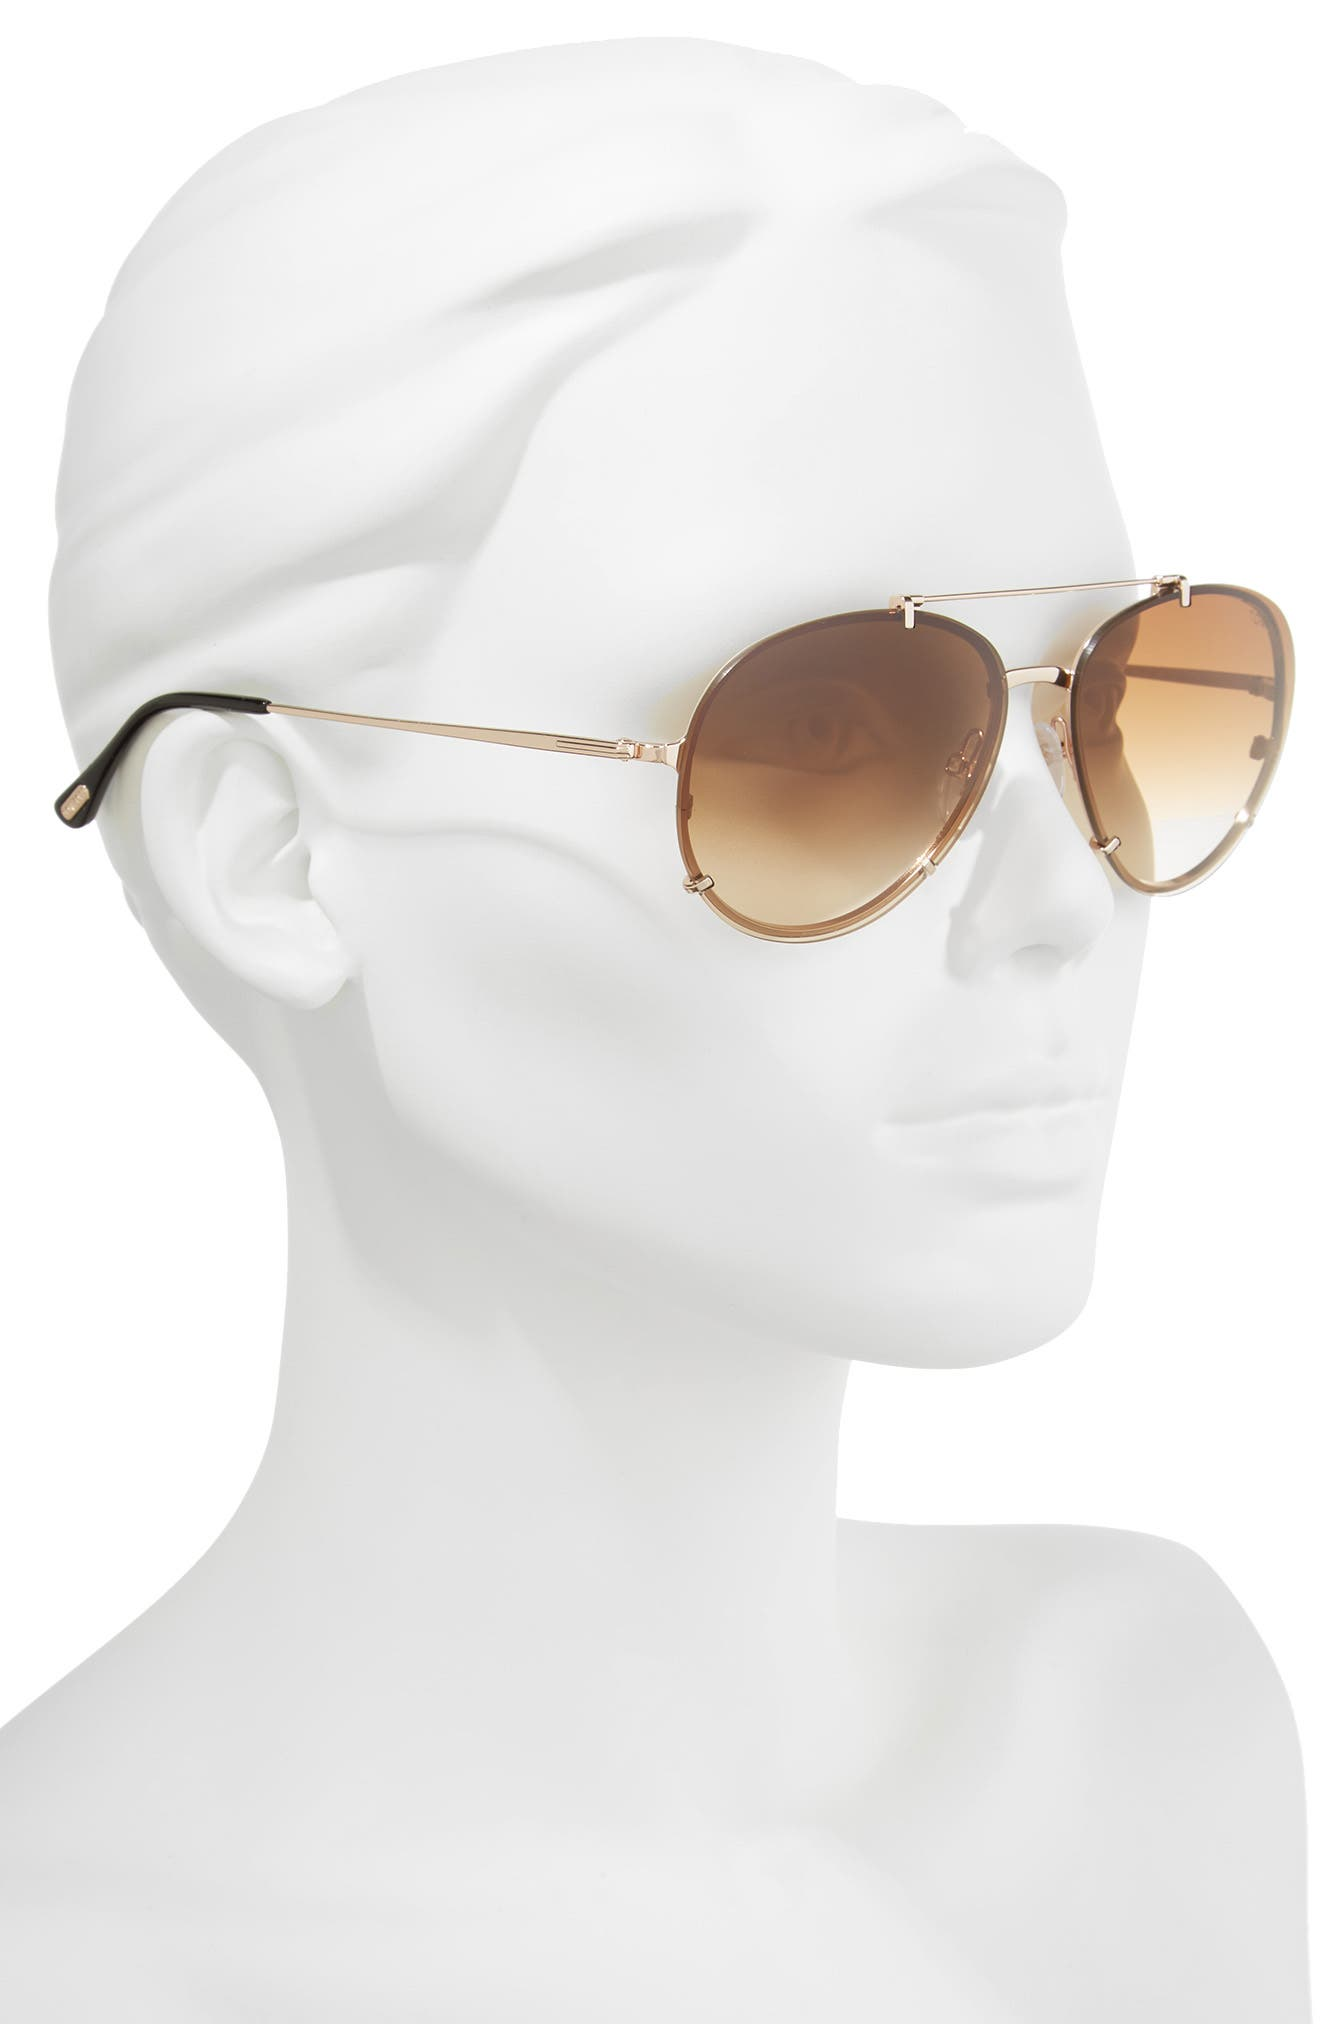 Dickon 59mm Aviator Sunglasses,                             Alternate thumbnail 2, color,                             ROSE GOLD/ BROWN